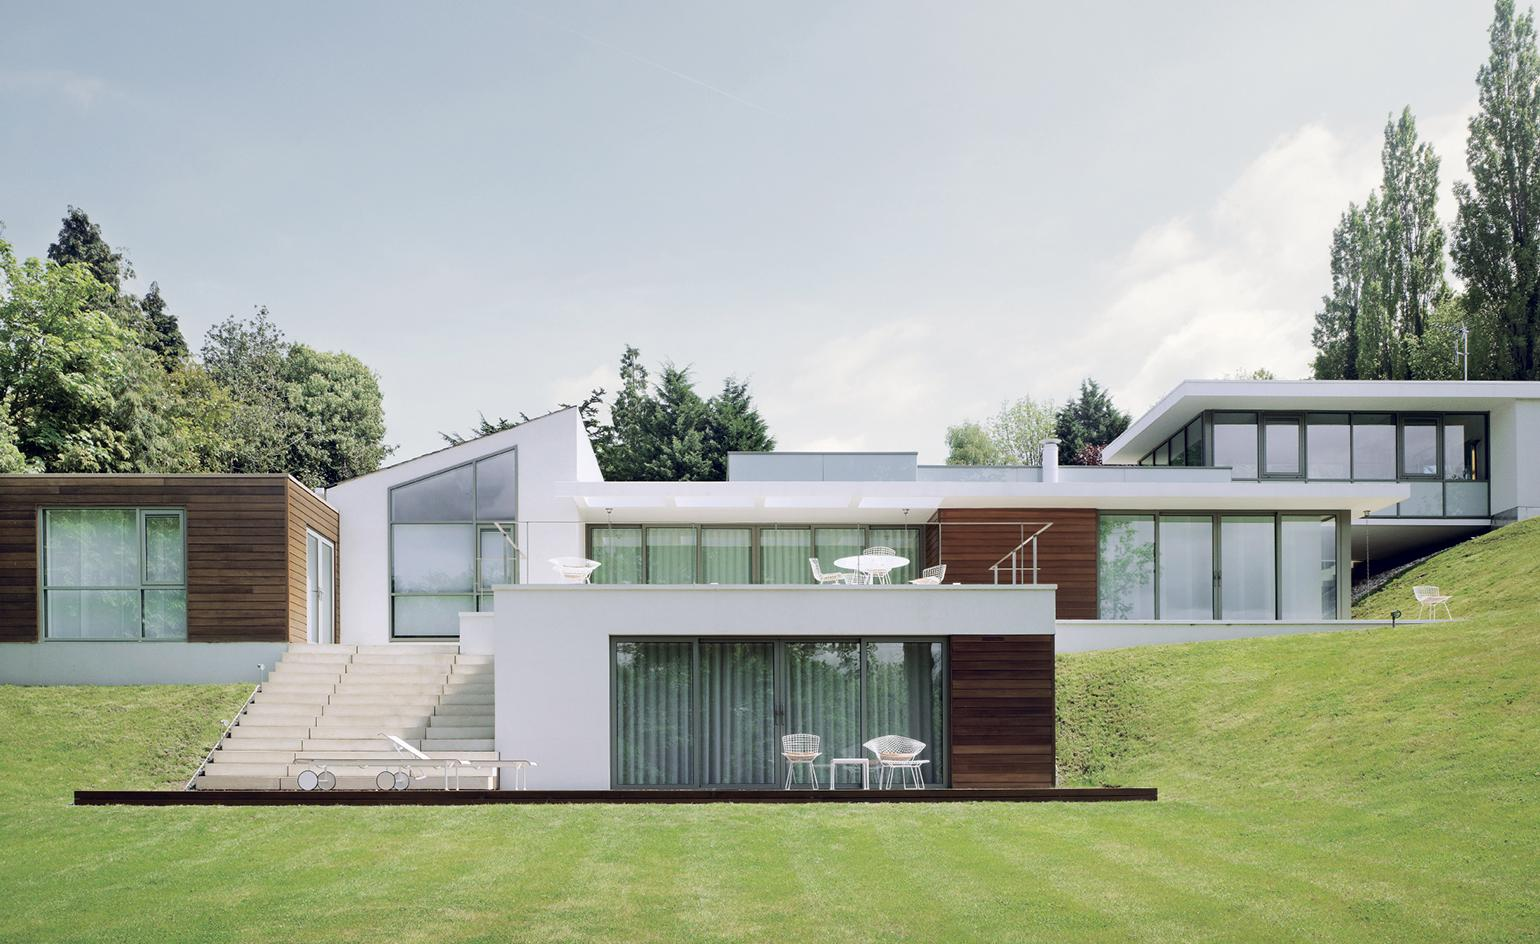 Land Rover design director Gerry McGovern's Warwickshire home is a dazzling slice of LA modernism